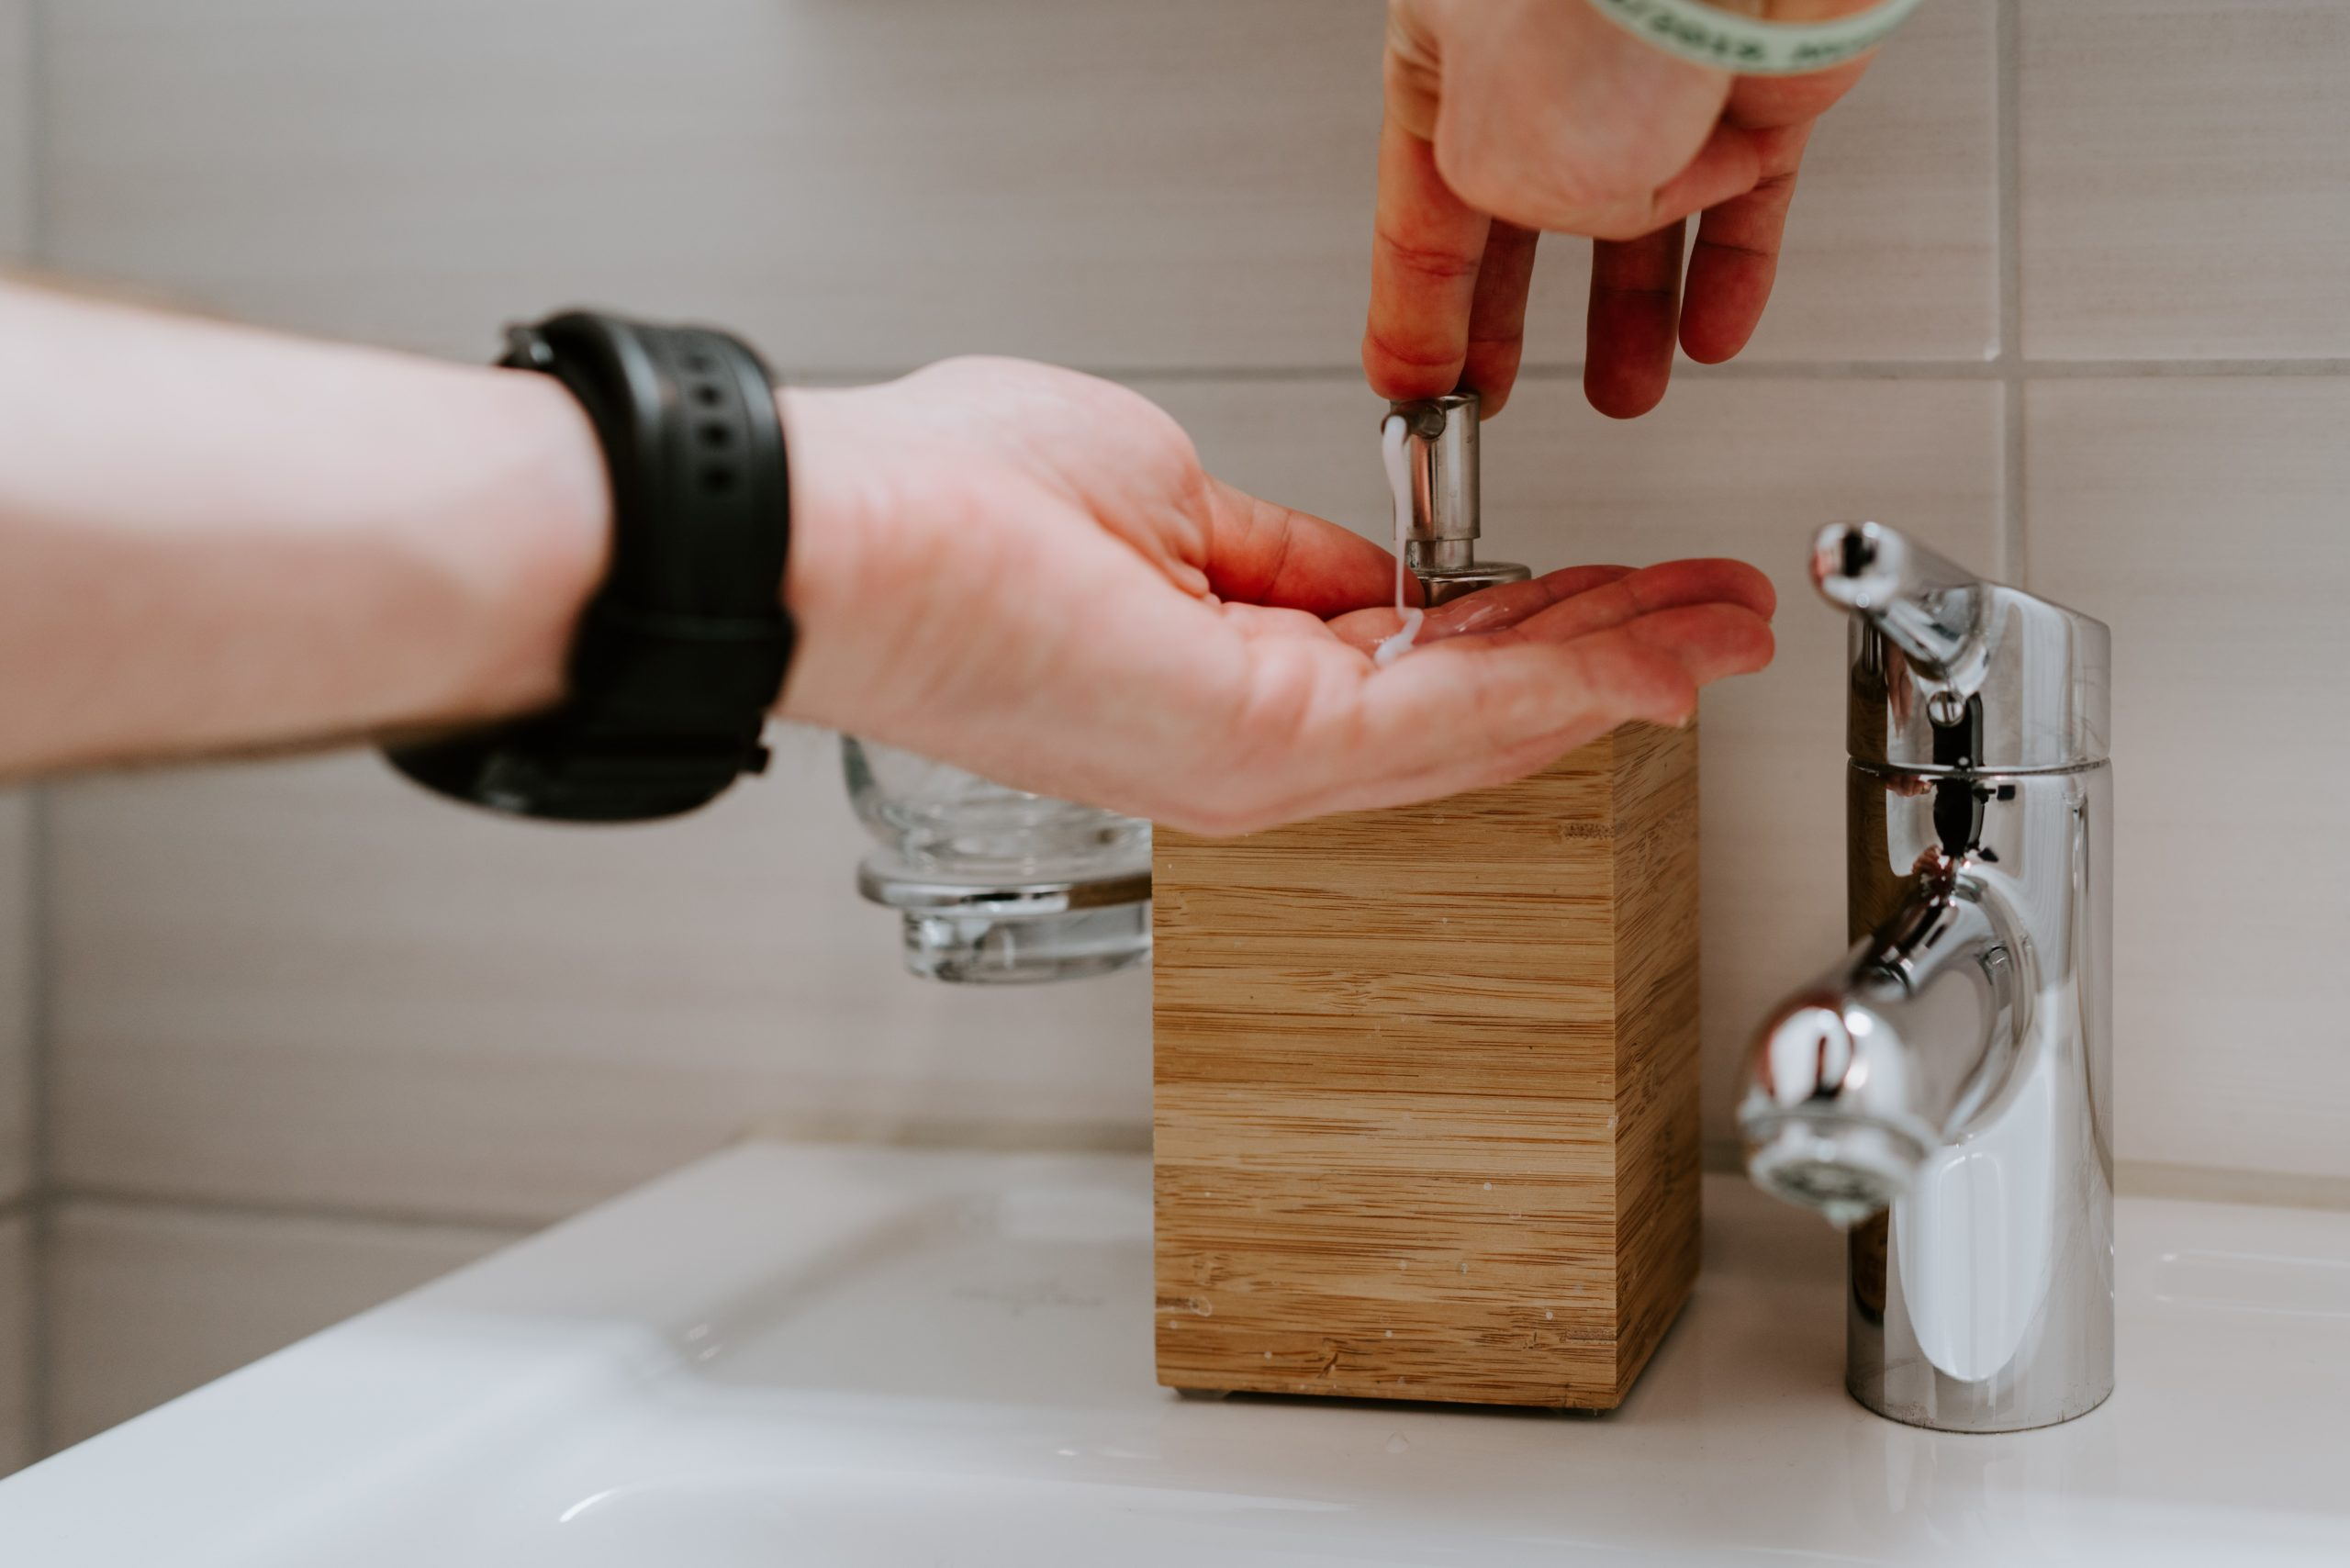 Thorough hand-washing has been urged to help stop the spread of the virus, which has claimed 16 lives in Scotland.